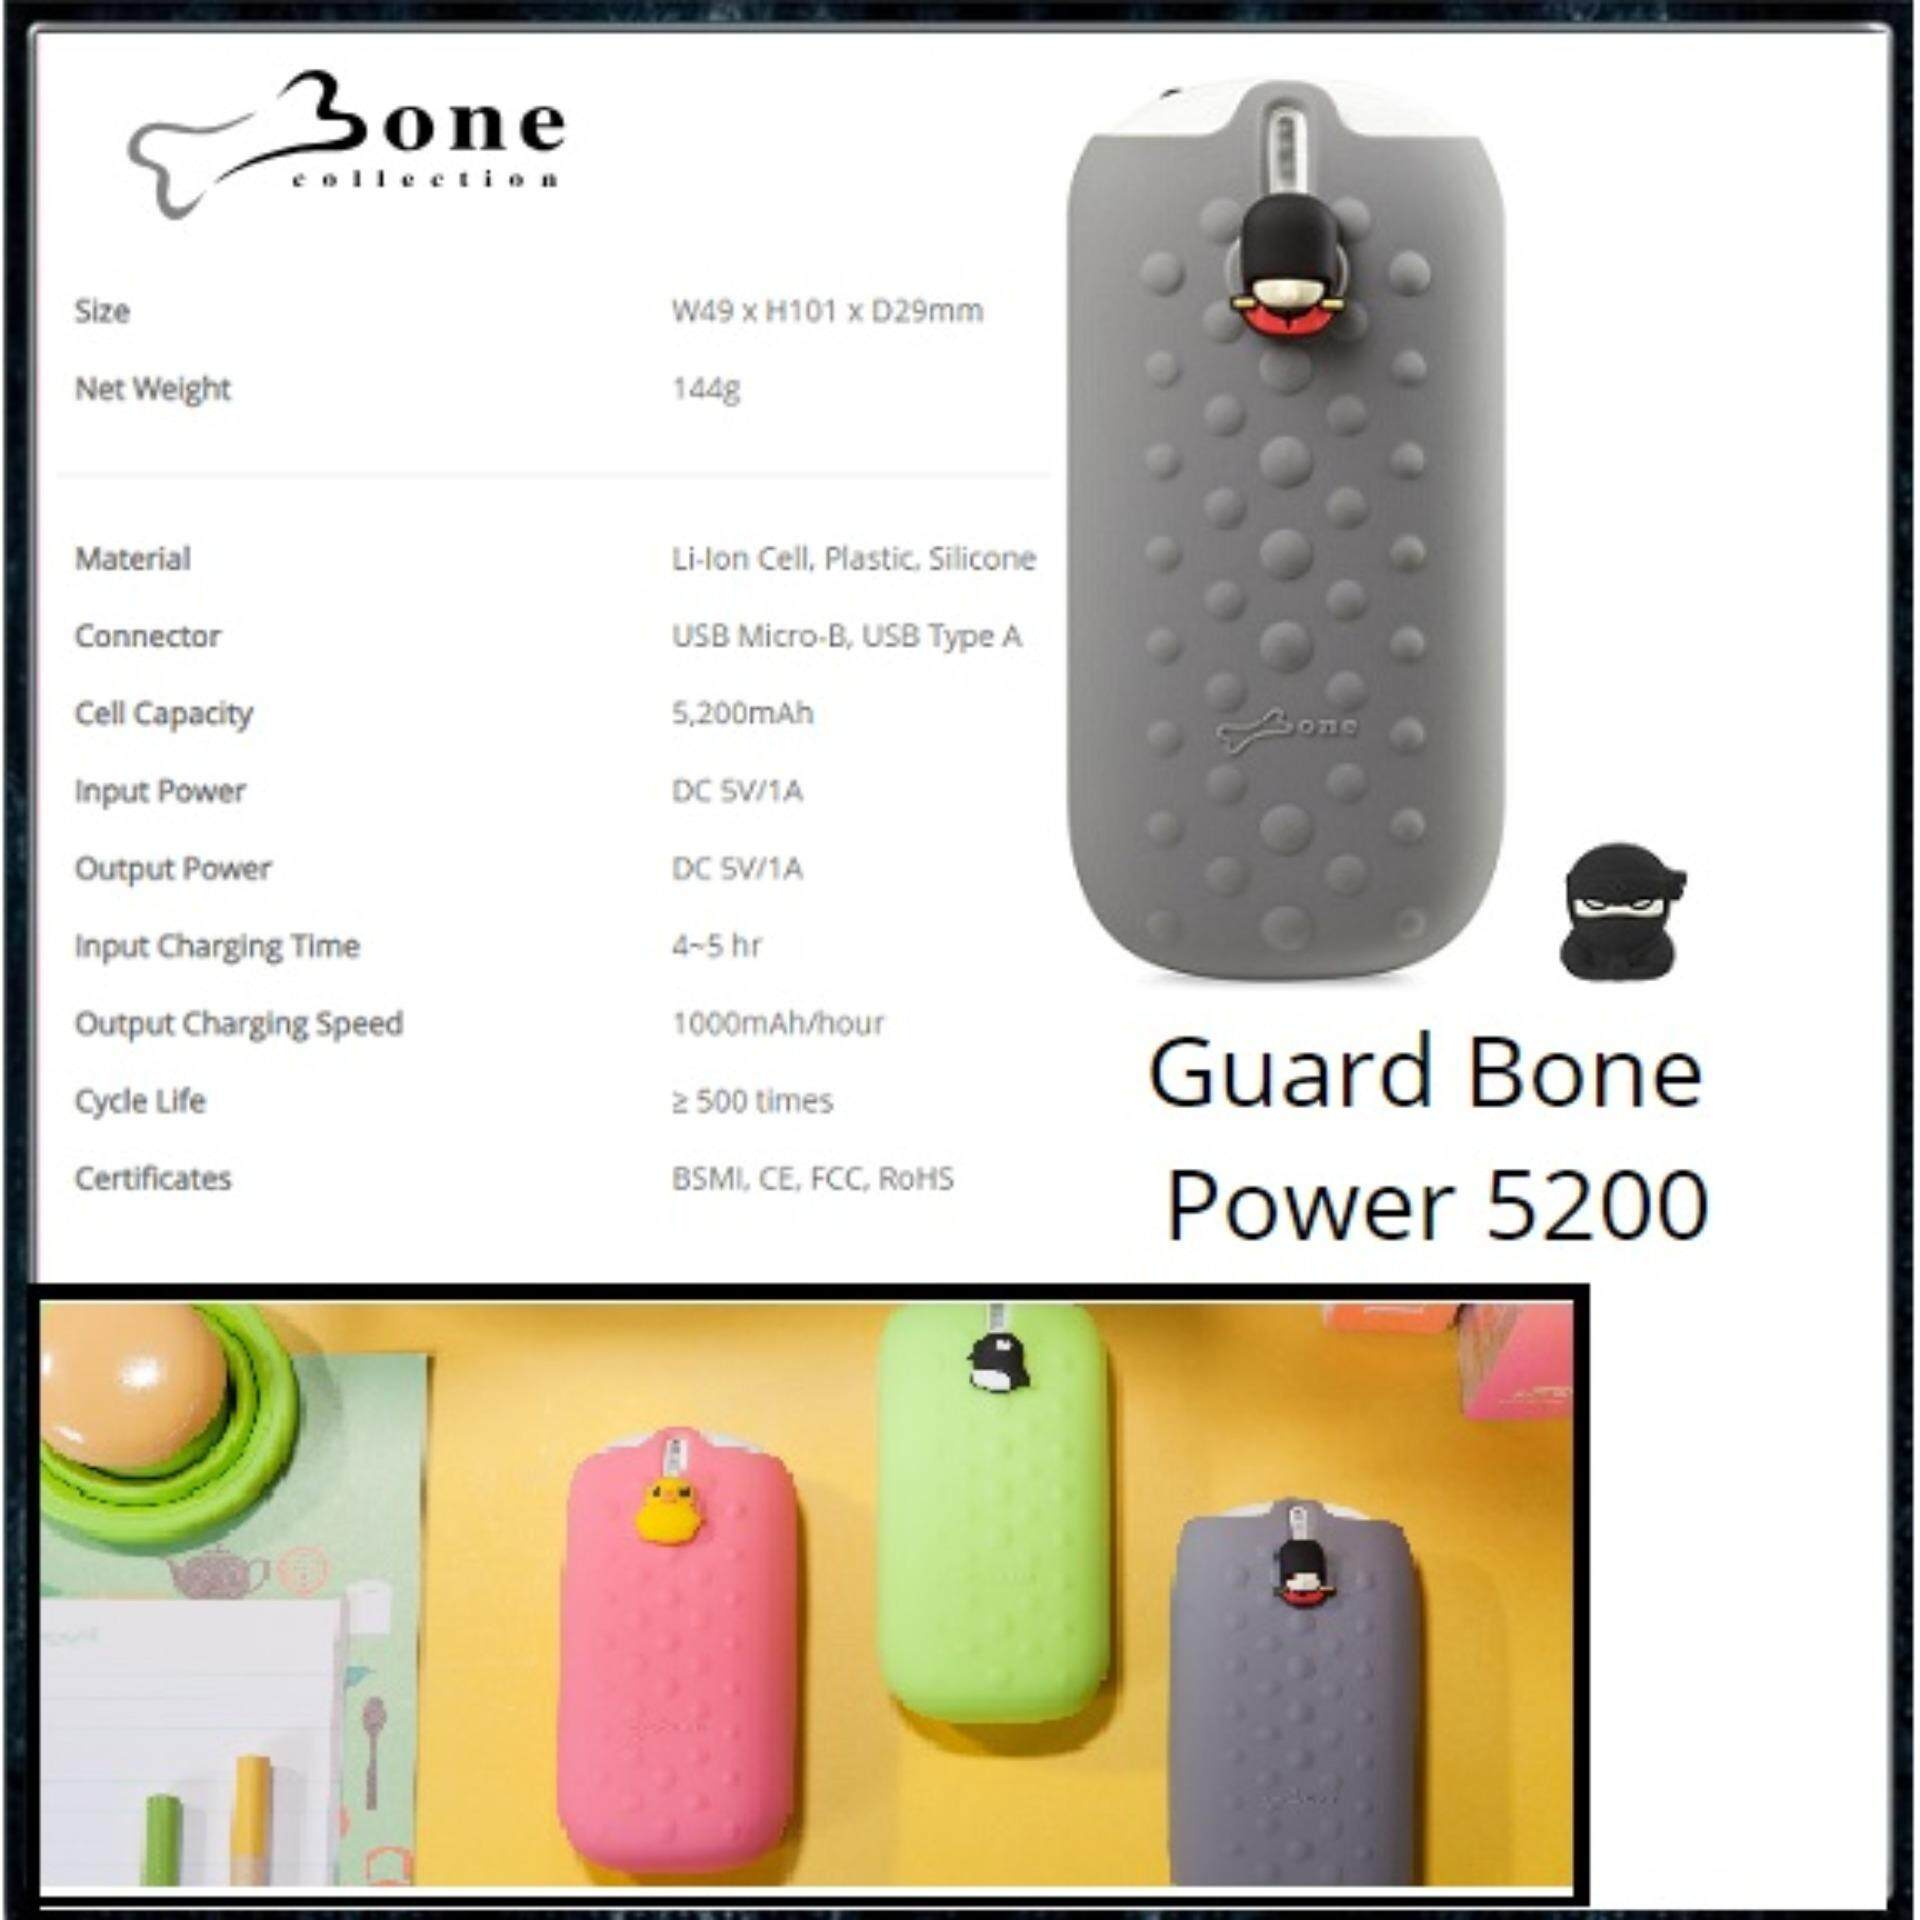 Bone Collection Power Bank 5200mAh